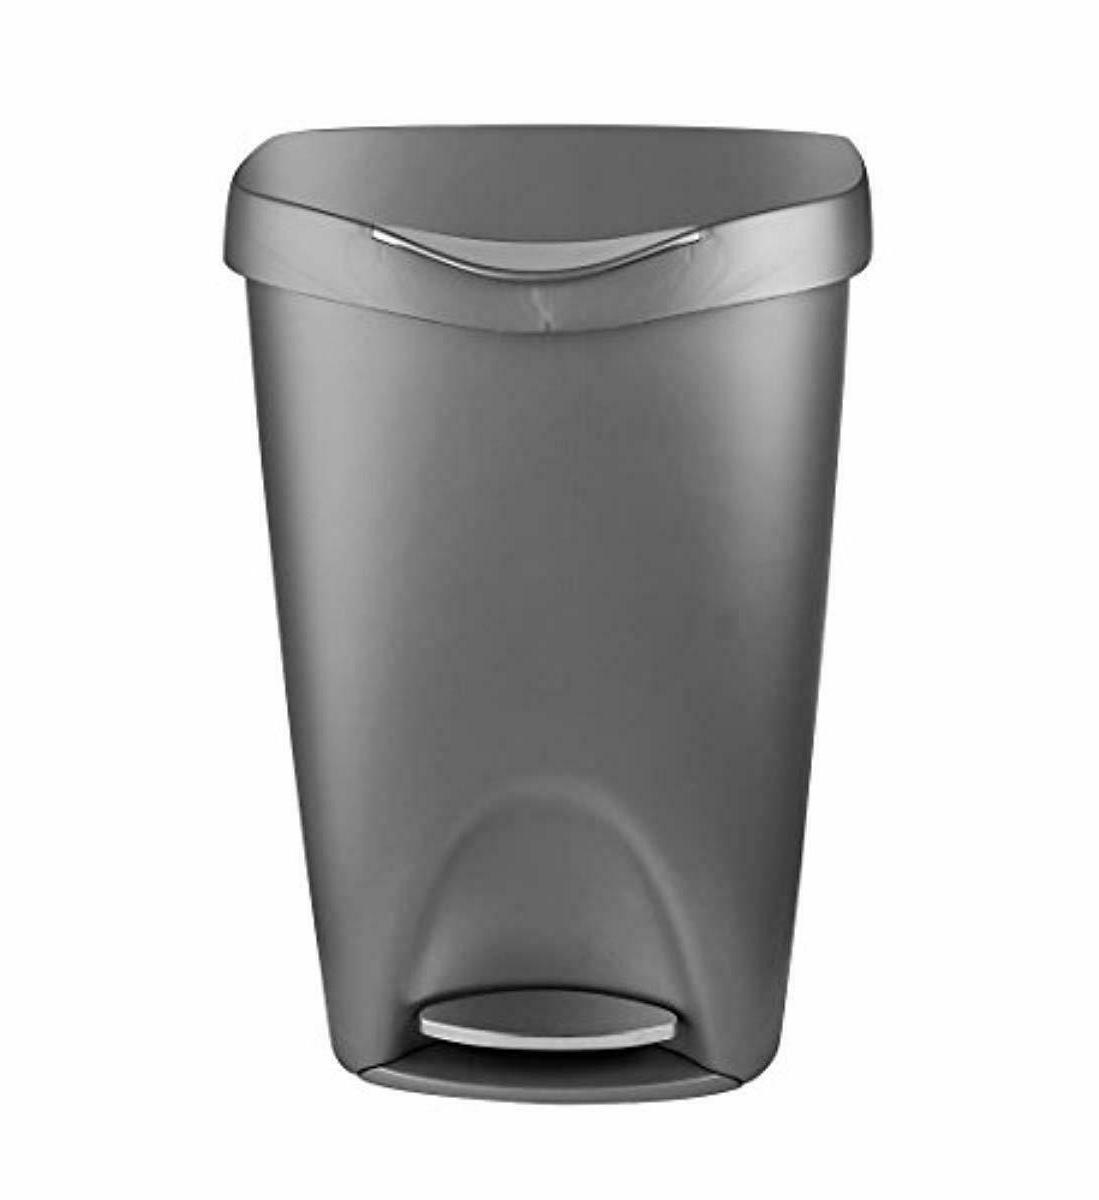 Trash with Lid - Can